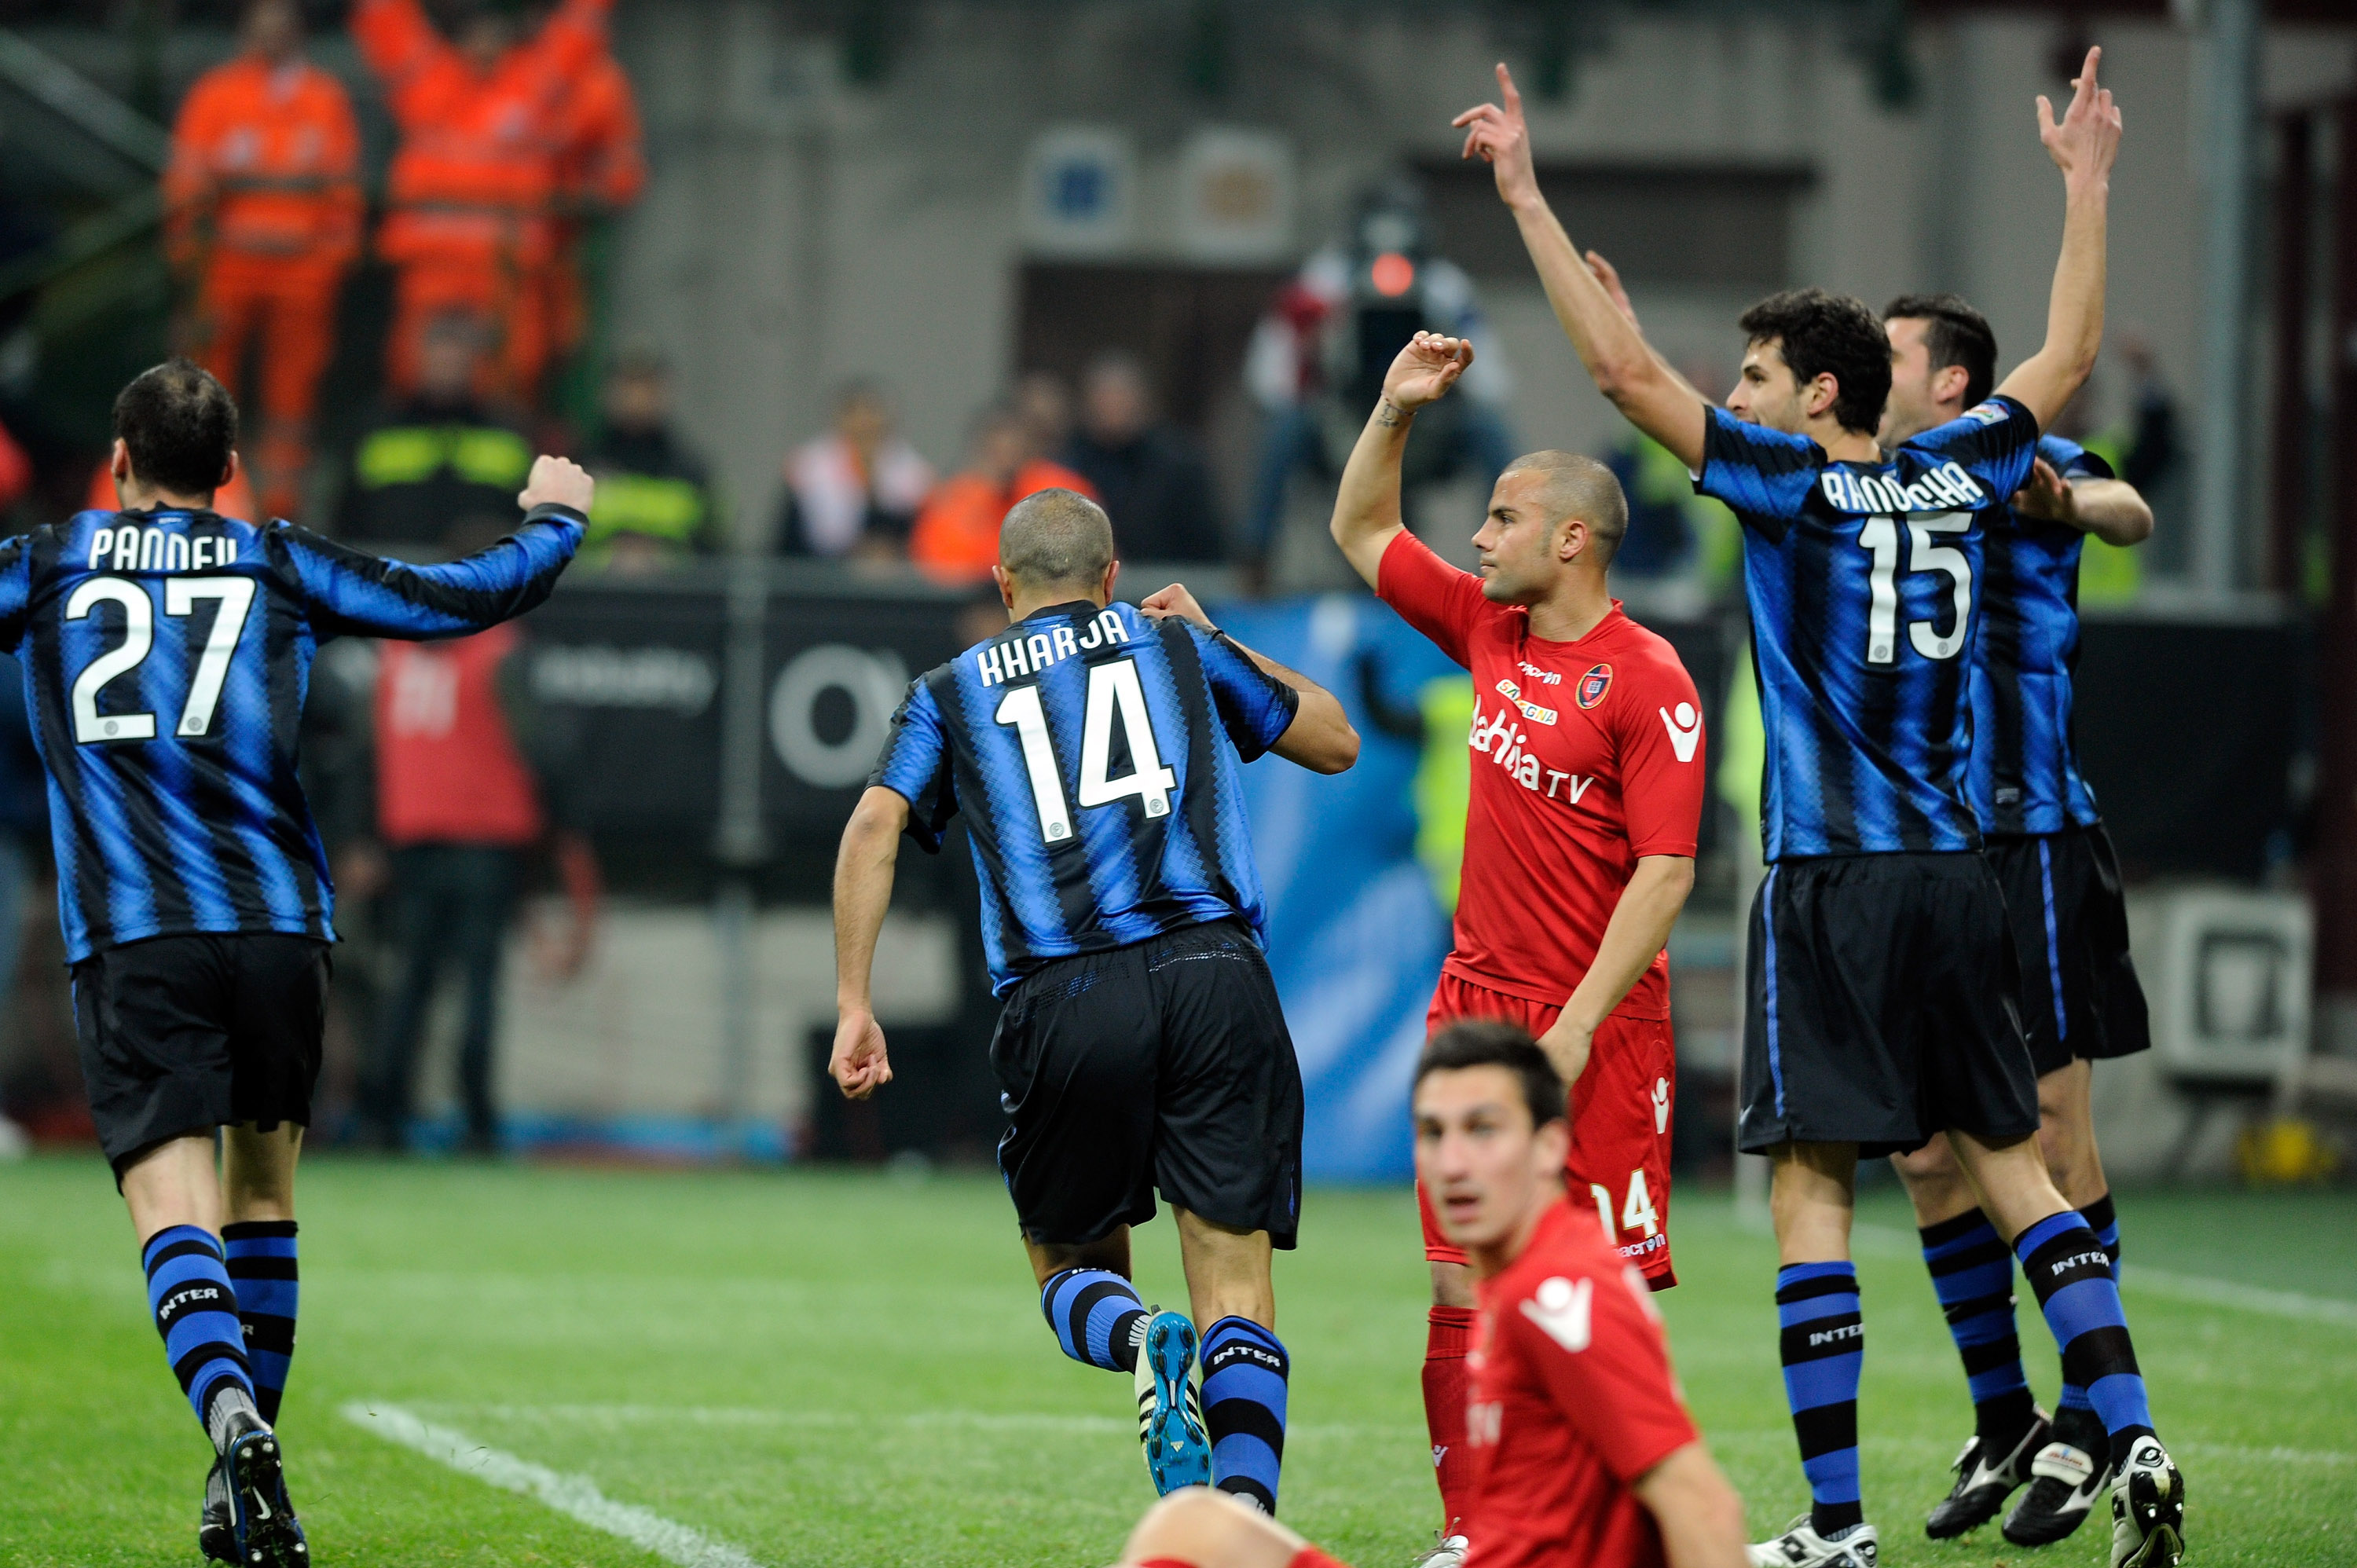 MILAN, ITALY - FEBRUARY 19:  Andrea Ranocchia (R) celebrates scoring the first goal during the Serie A match between FC Internazionale Milano and Cagliari Calcio at Stadio Giuseppe Meazza on February 19, 2011 in Milan, Italy.  (Photo by Claudio Villa/Gett